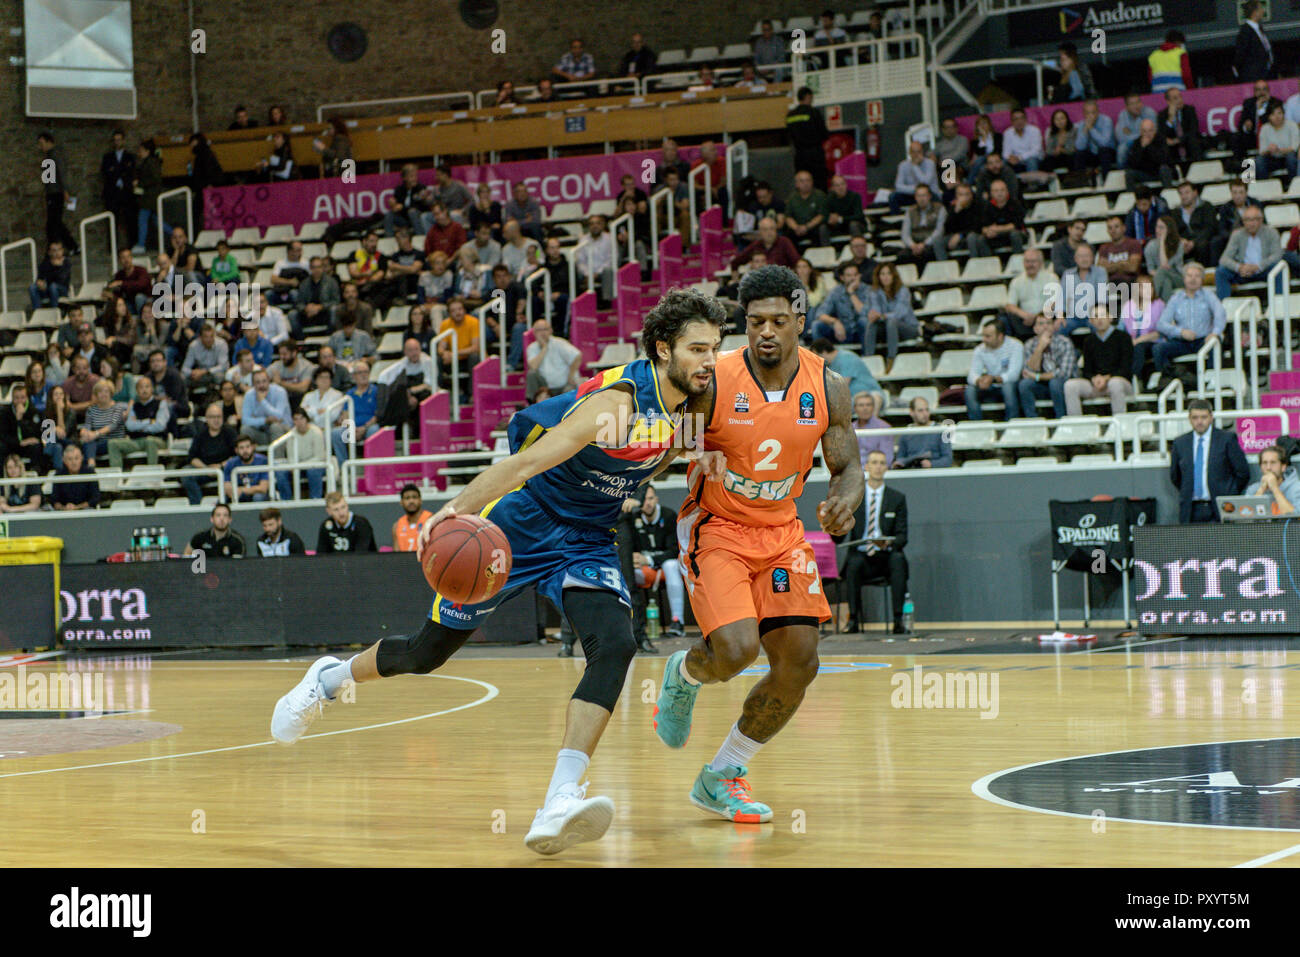 Andorra. 24th October, 2018. Mora Banc Andorra's player Michelle Vitali has the possession of the ball with the mark of Ratiopharma player Ulm Dwayne Evans. EURO CUP game between Morabanc Andorra BC and ratiopharm Ulm at Poliesportiu d´ Andorra Stadium on October 24, 2018 in Andorra La Vella. - Stock Image